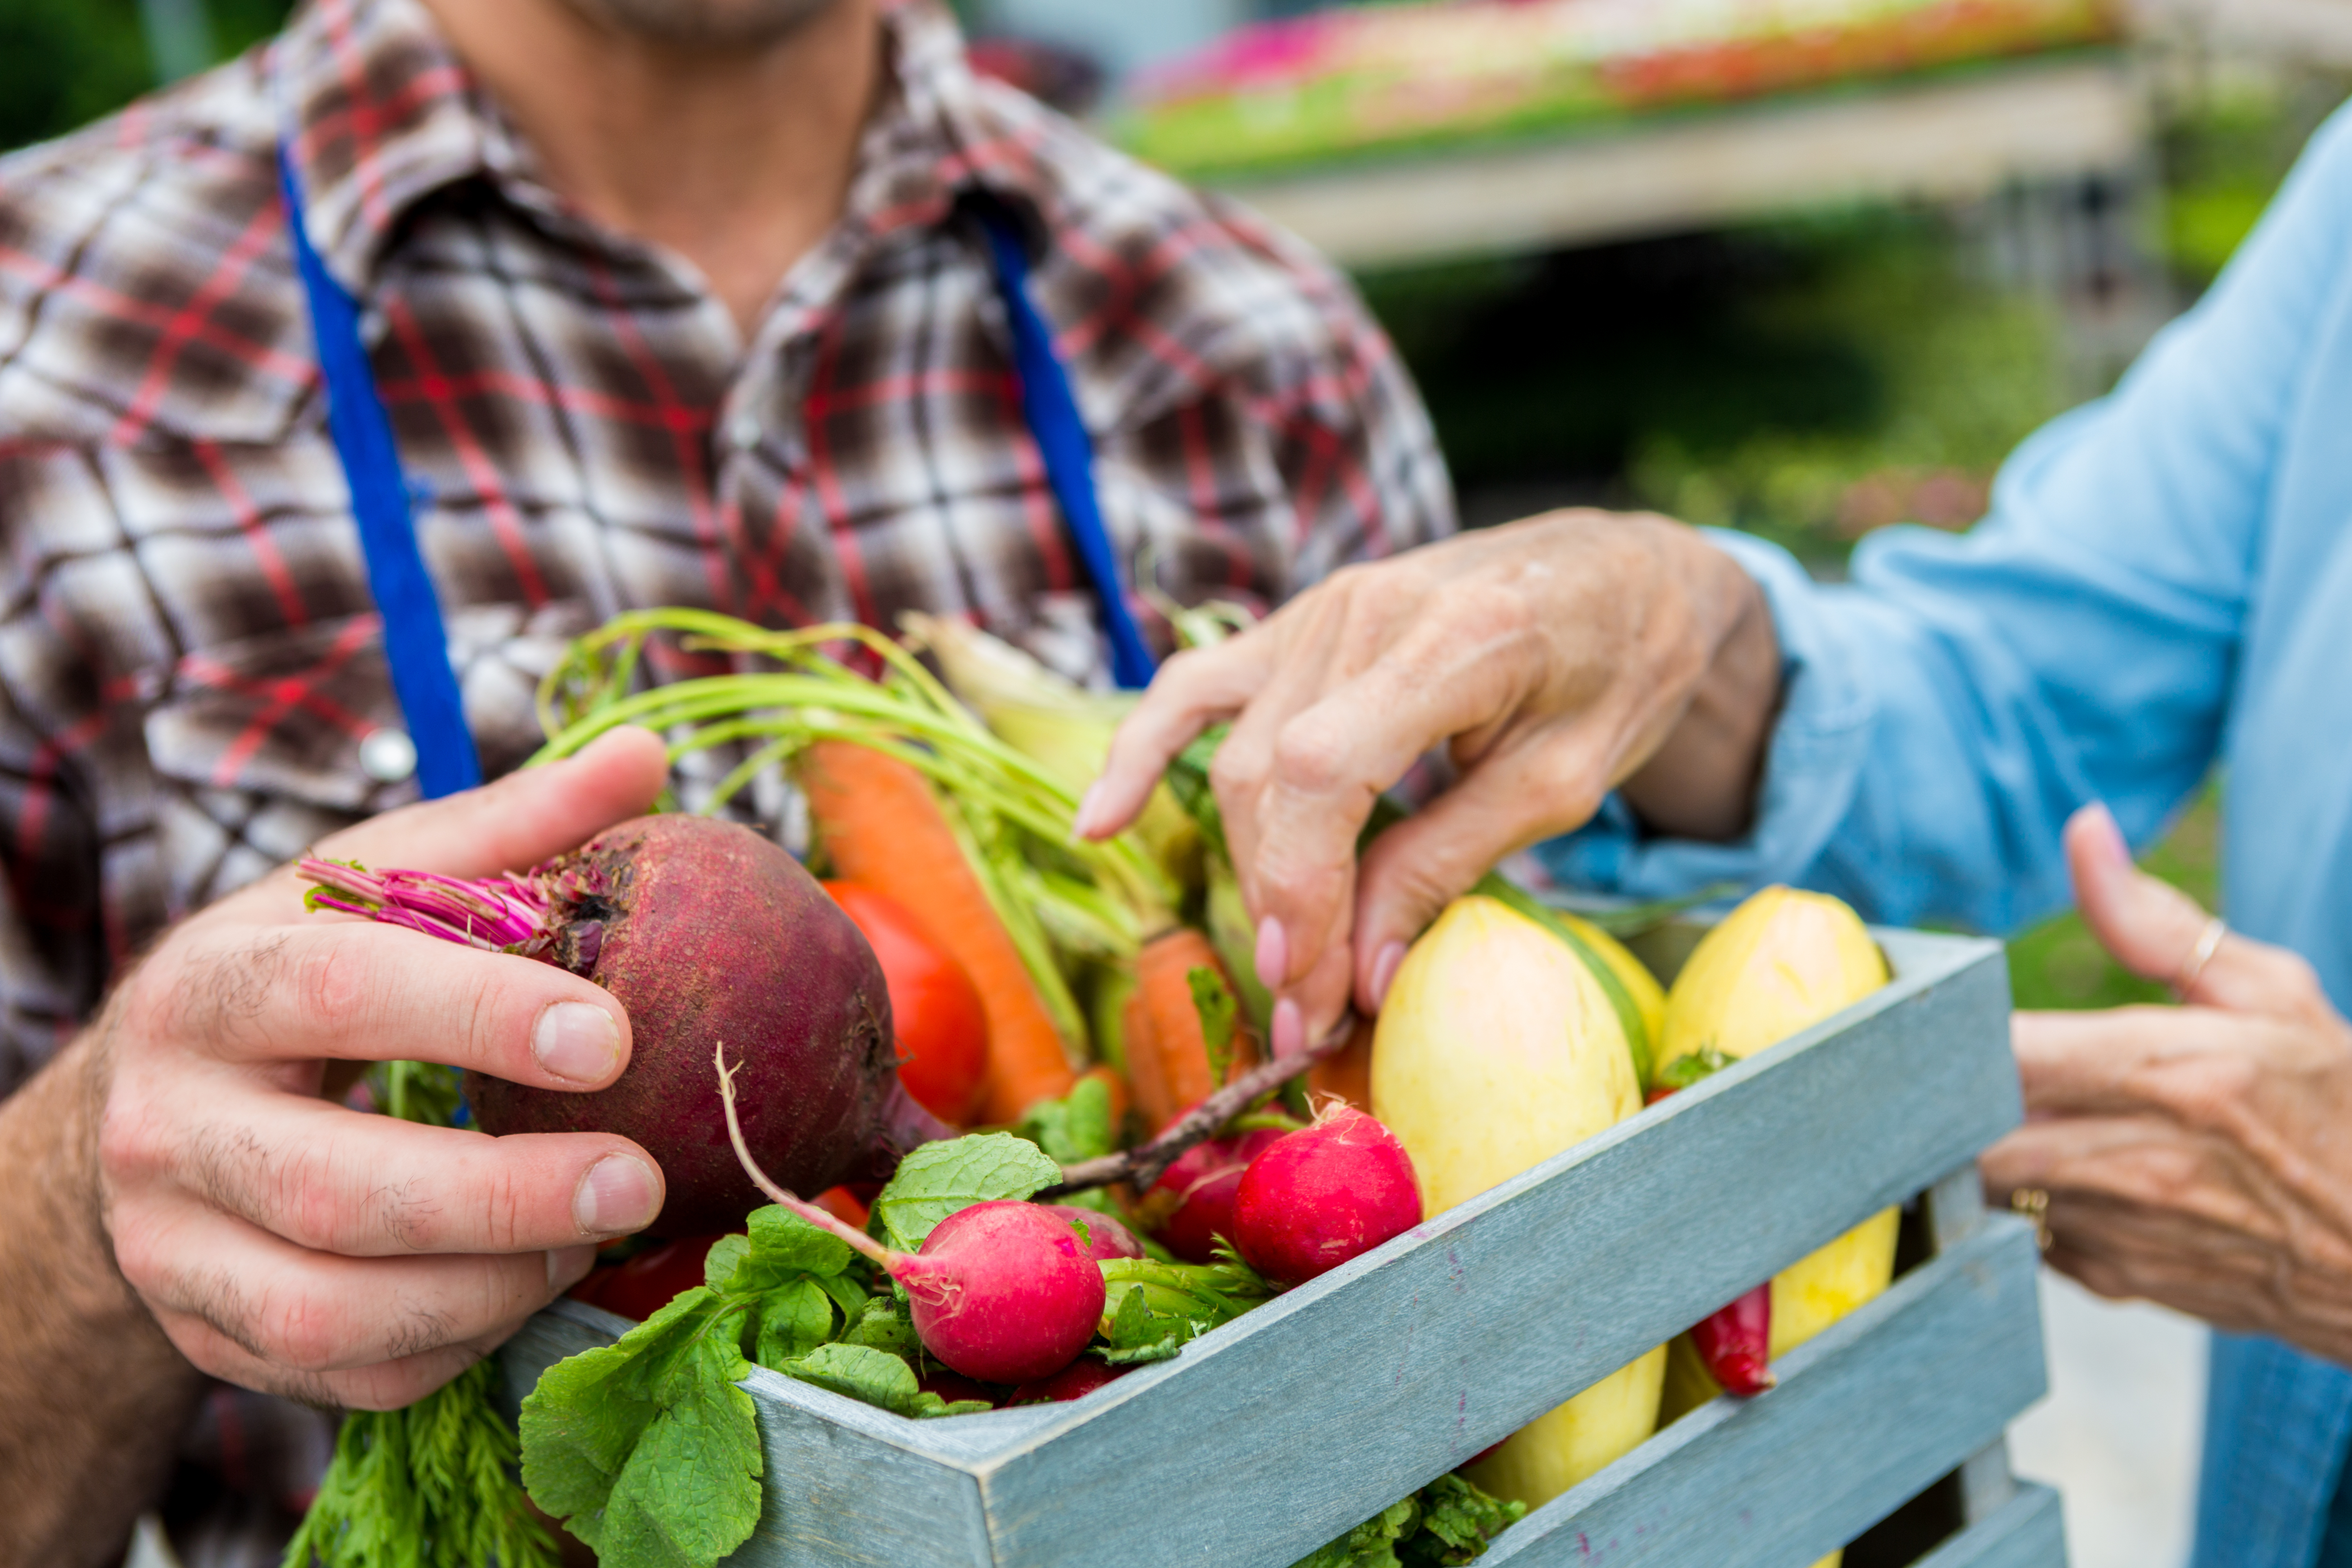 Vegetable Stand Designs : How to make money selling fruits vegetables from a produce stand